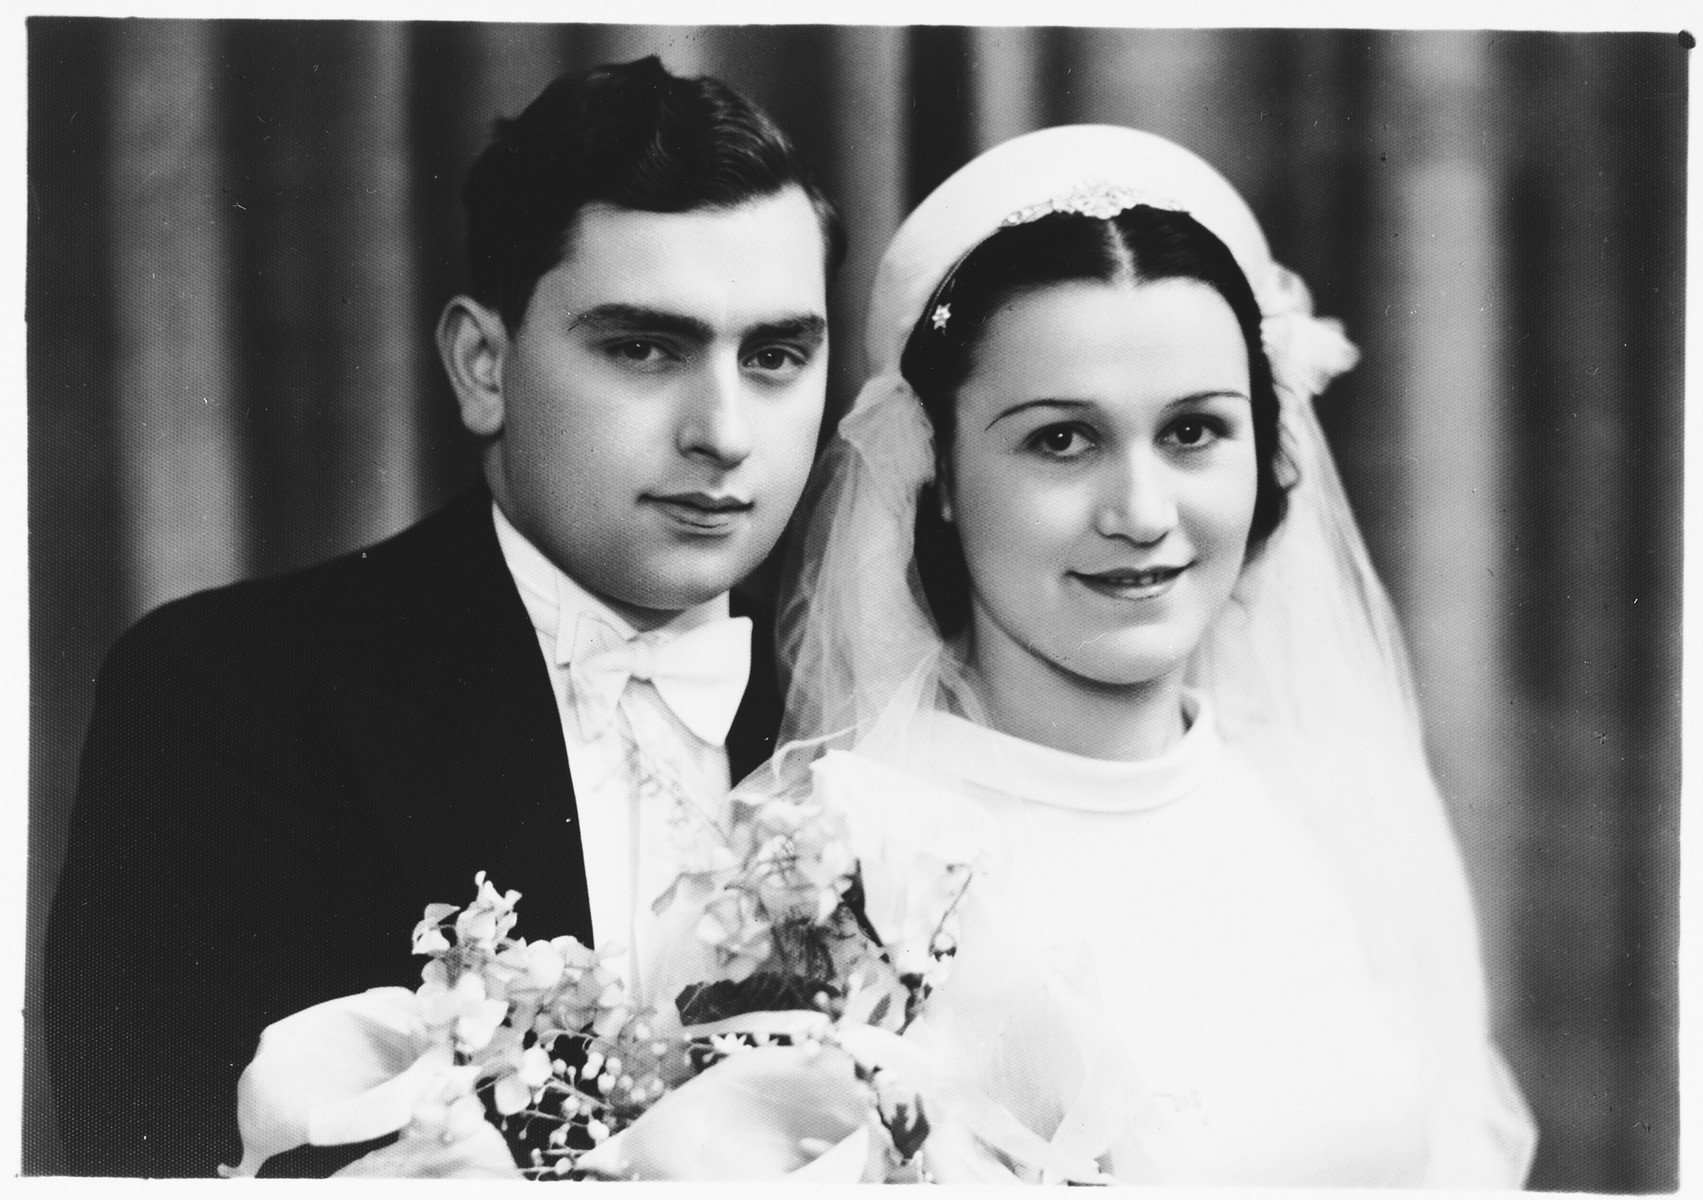 Wedding portrait of a Jewish couple, Adolf and Estera Ciechanow in Antwerp, Belgium.  Adolf and Estera are the brother and sister-in-law of Alex Ciechanow.